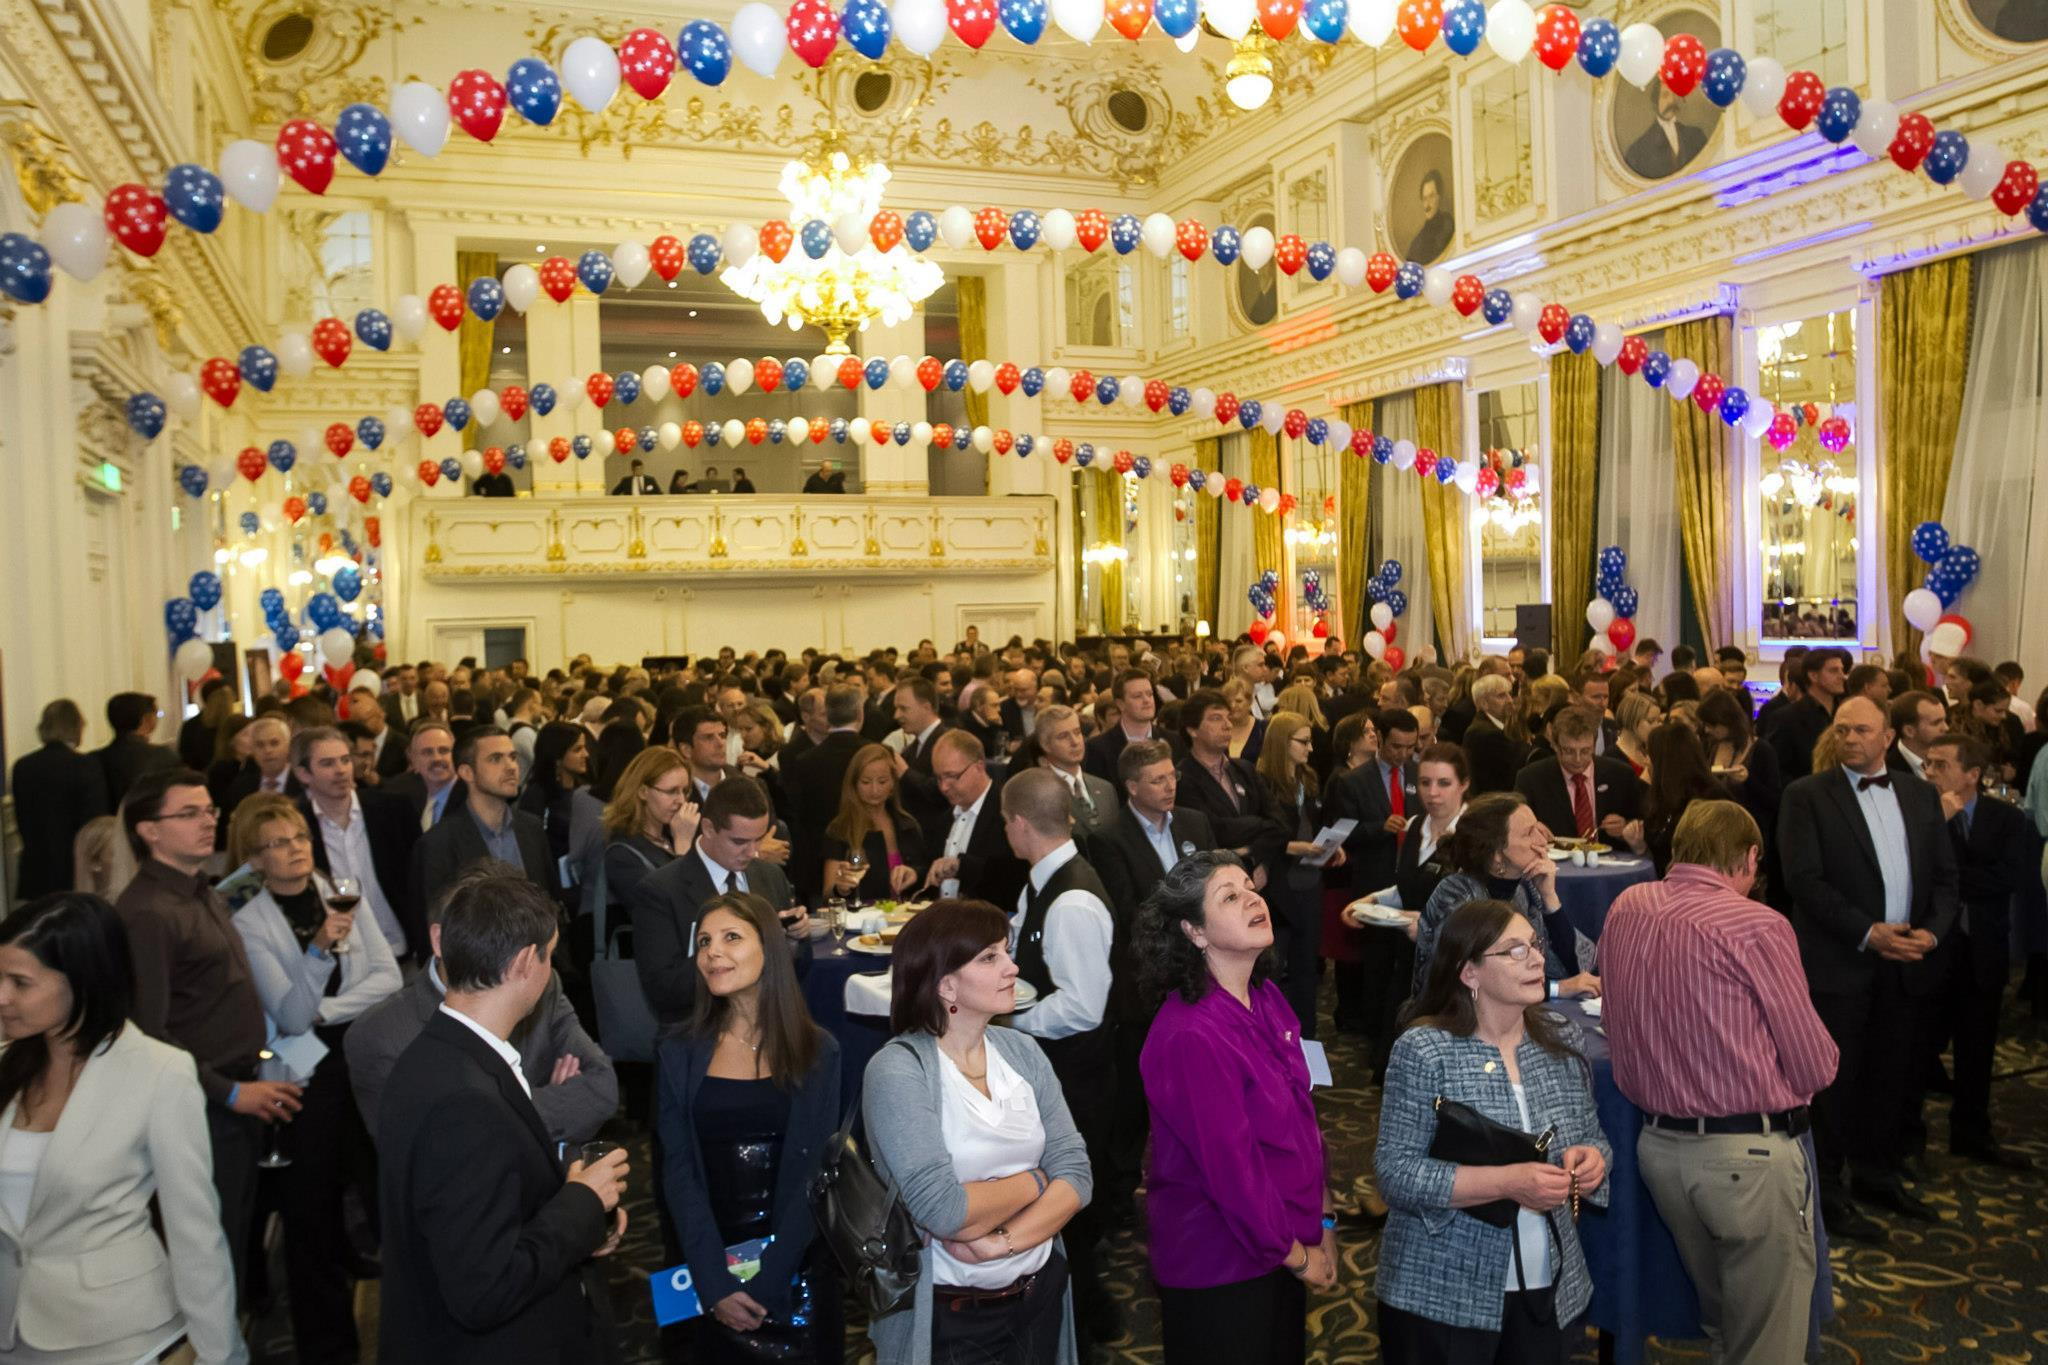 AmCham's American Election Night, Corinthia Hotel Budapest, 6 November 2012